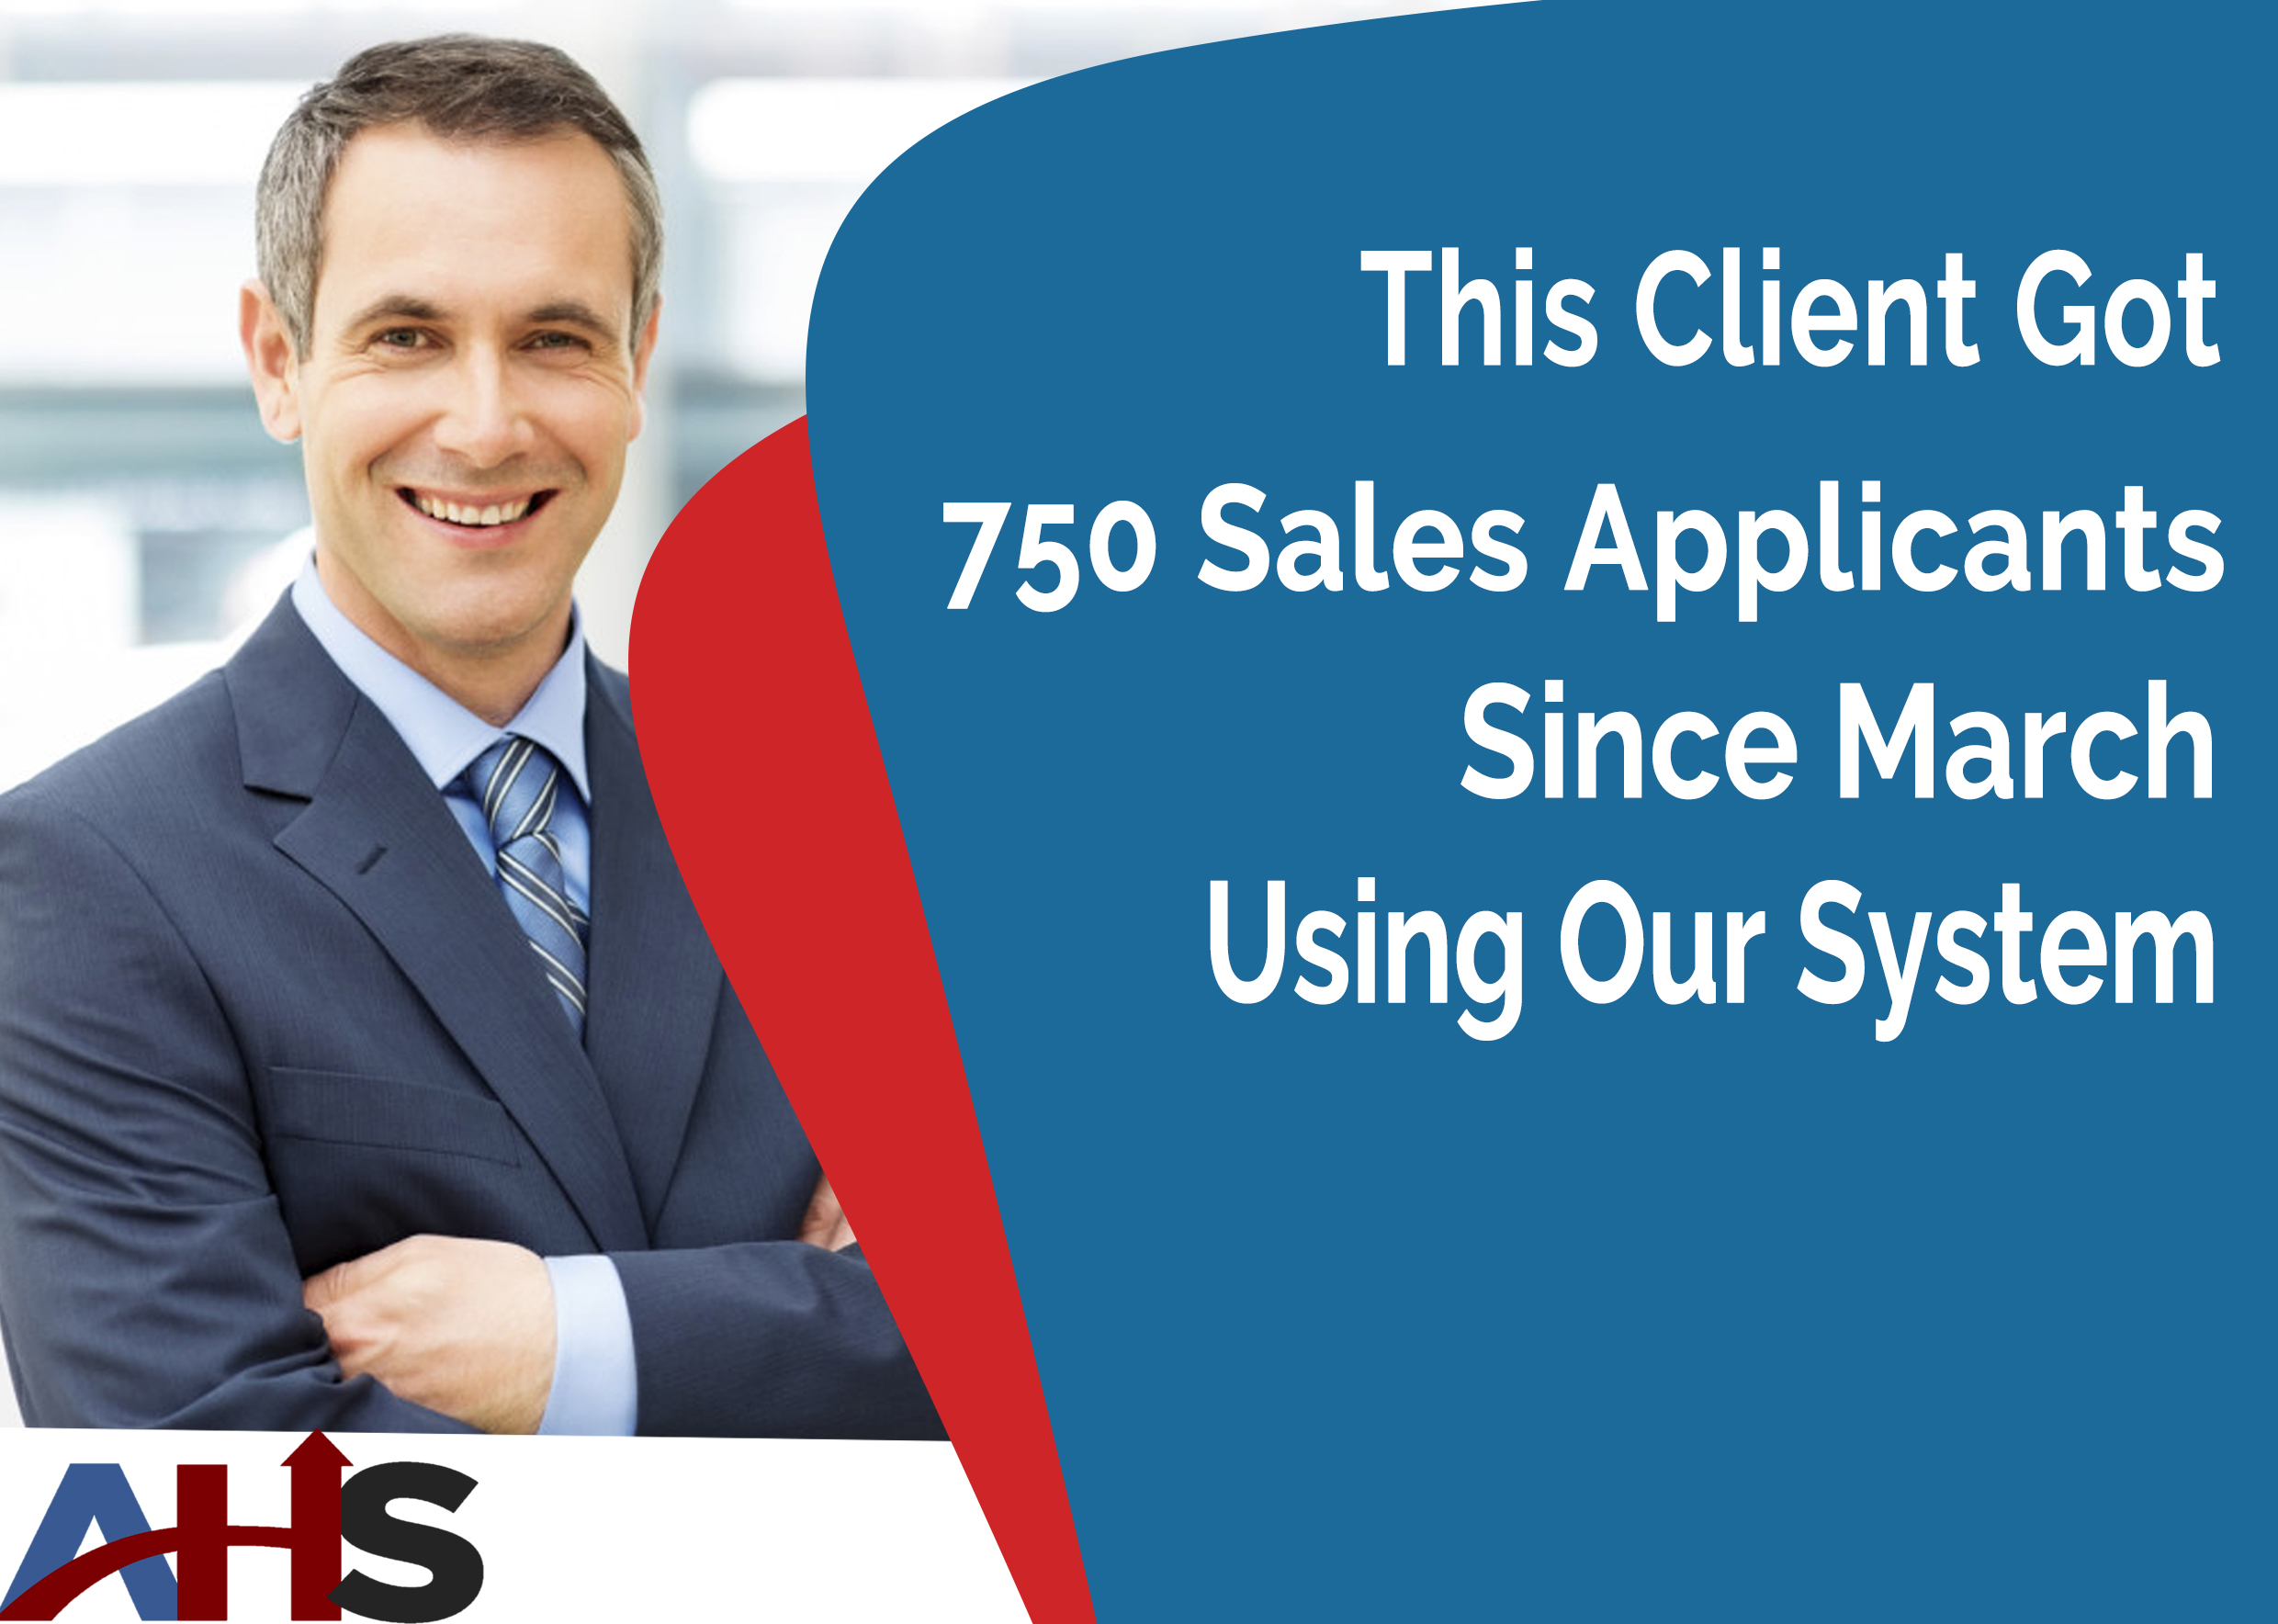 This Client Got 750 Sales Applicants Since March Using Our System